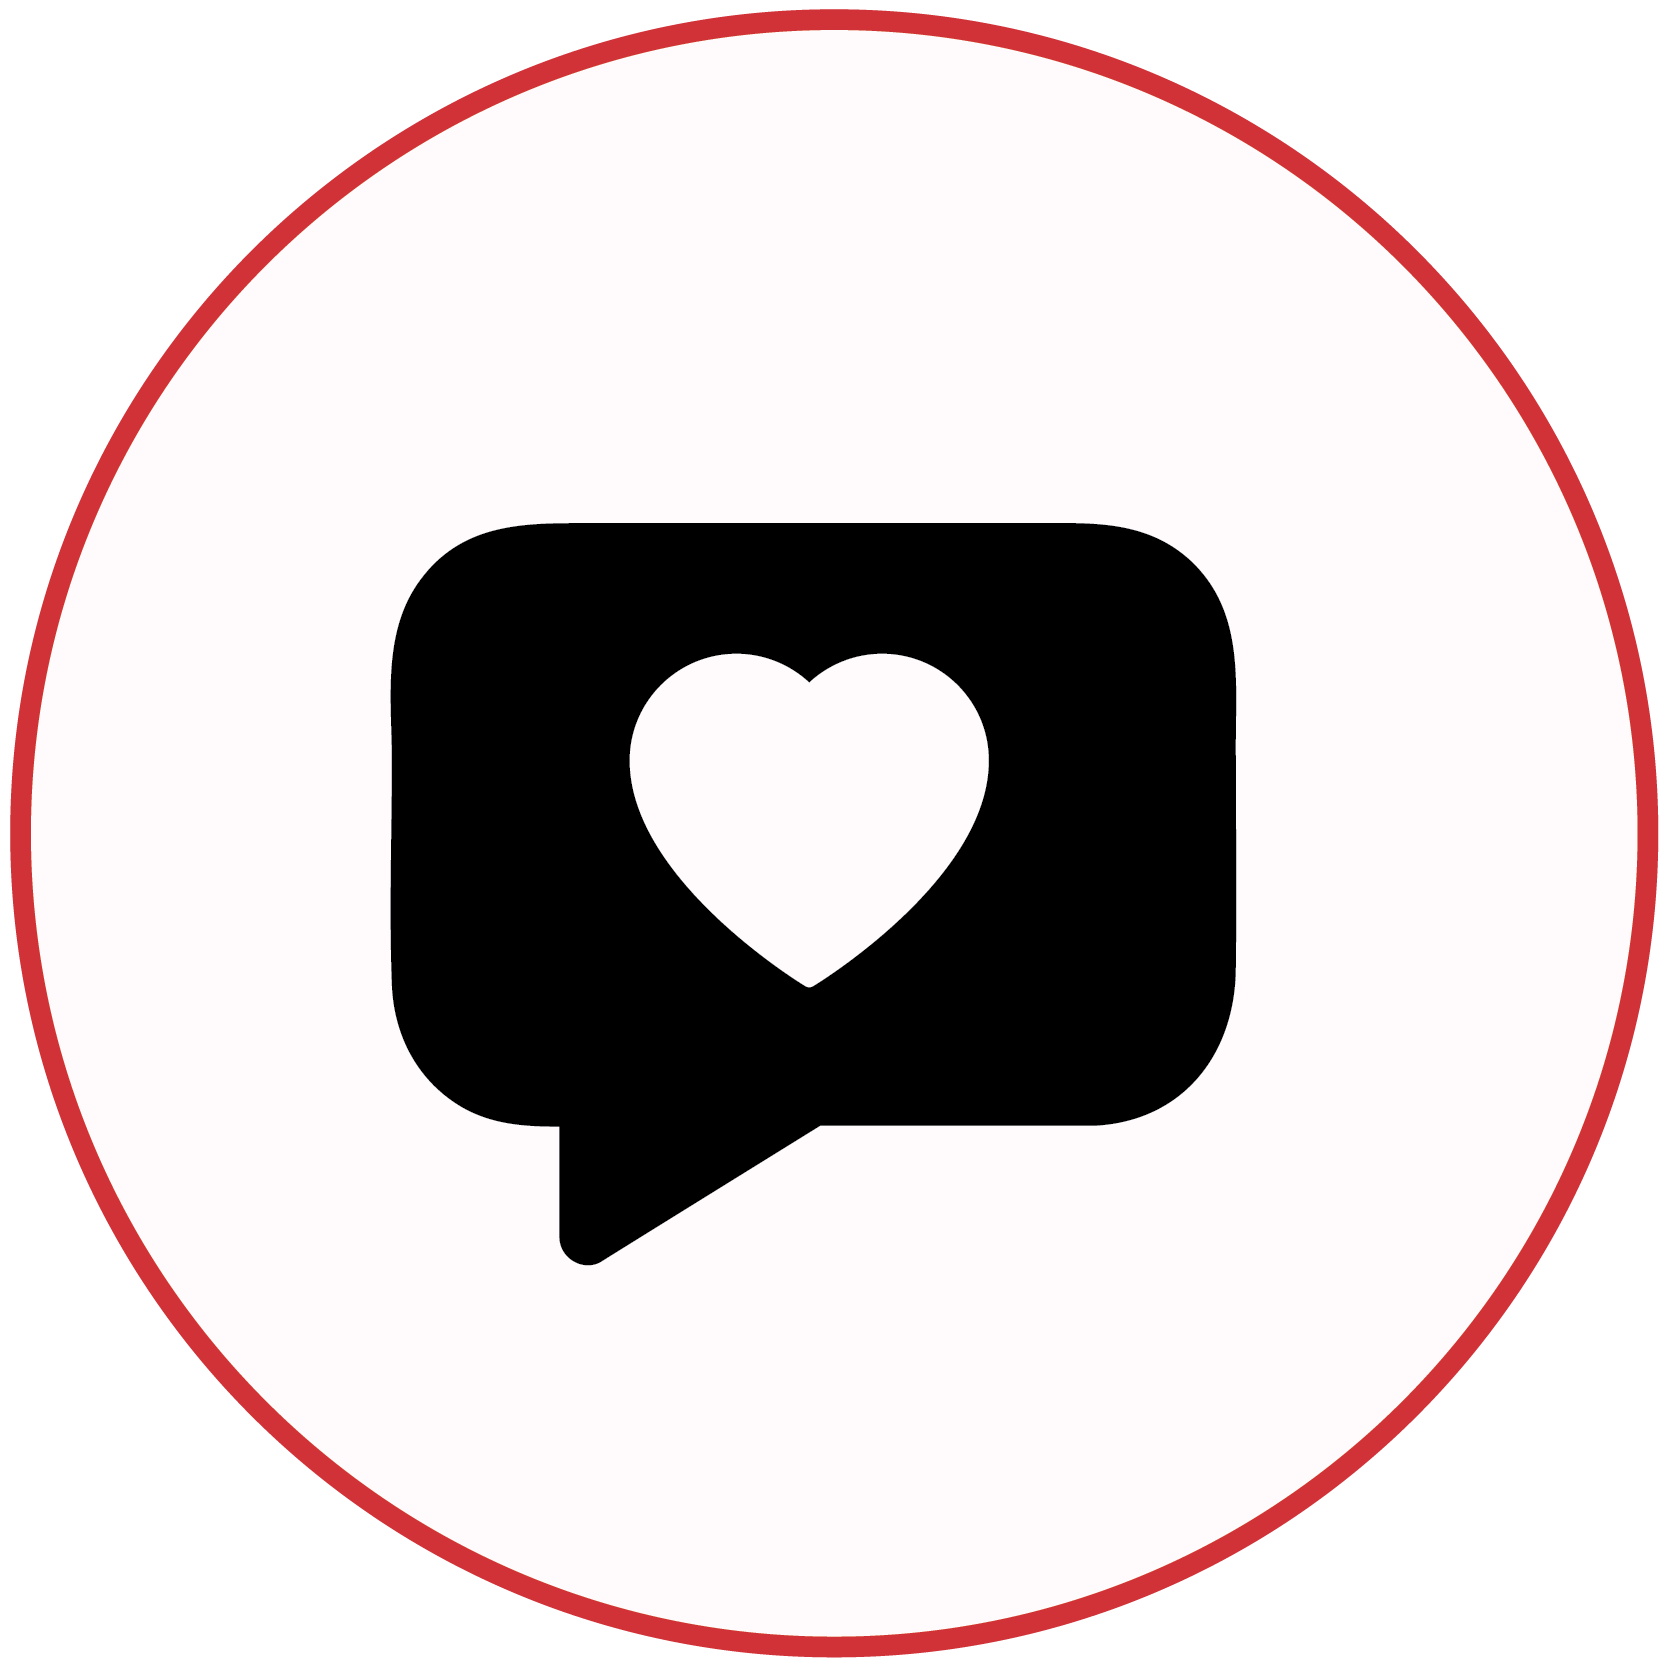 A black icon of a speech bubble with a heart